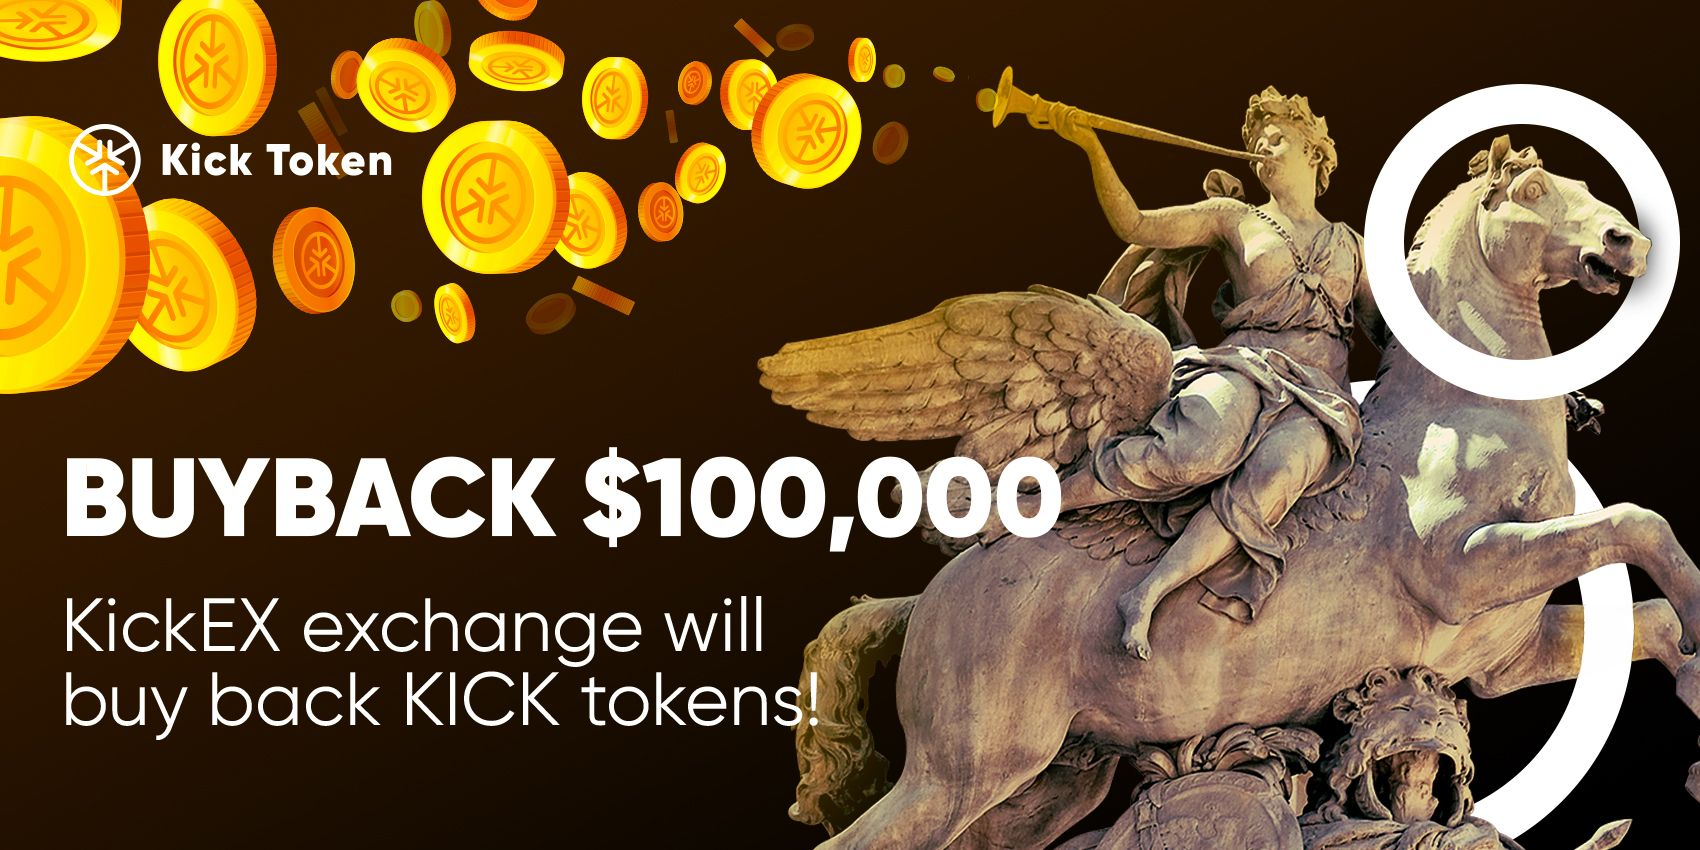 /announcement-the-kickex-exchange-will-buy-back-kicktokens-at-a-price-of-dollar000015-per-token-481k3x0o feature image